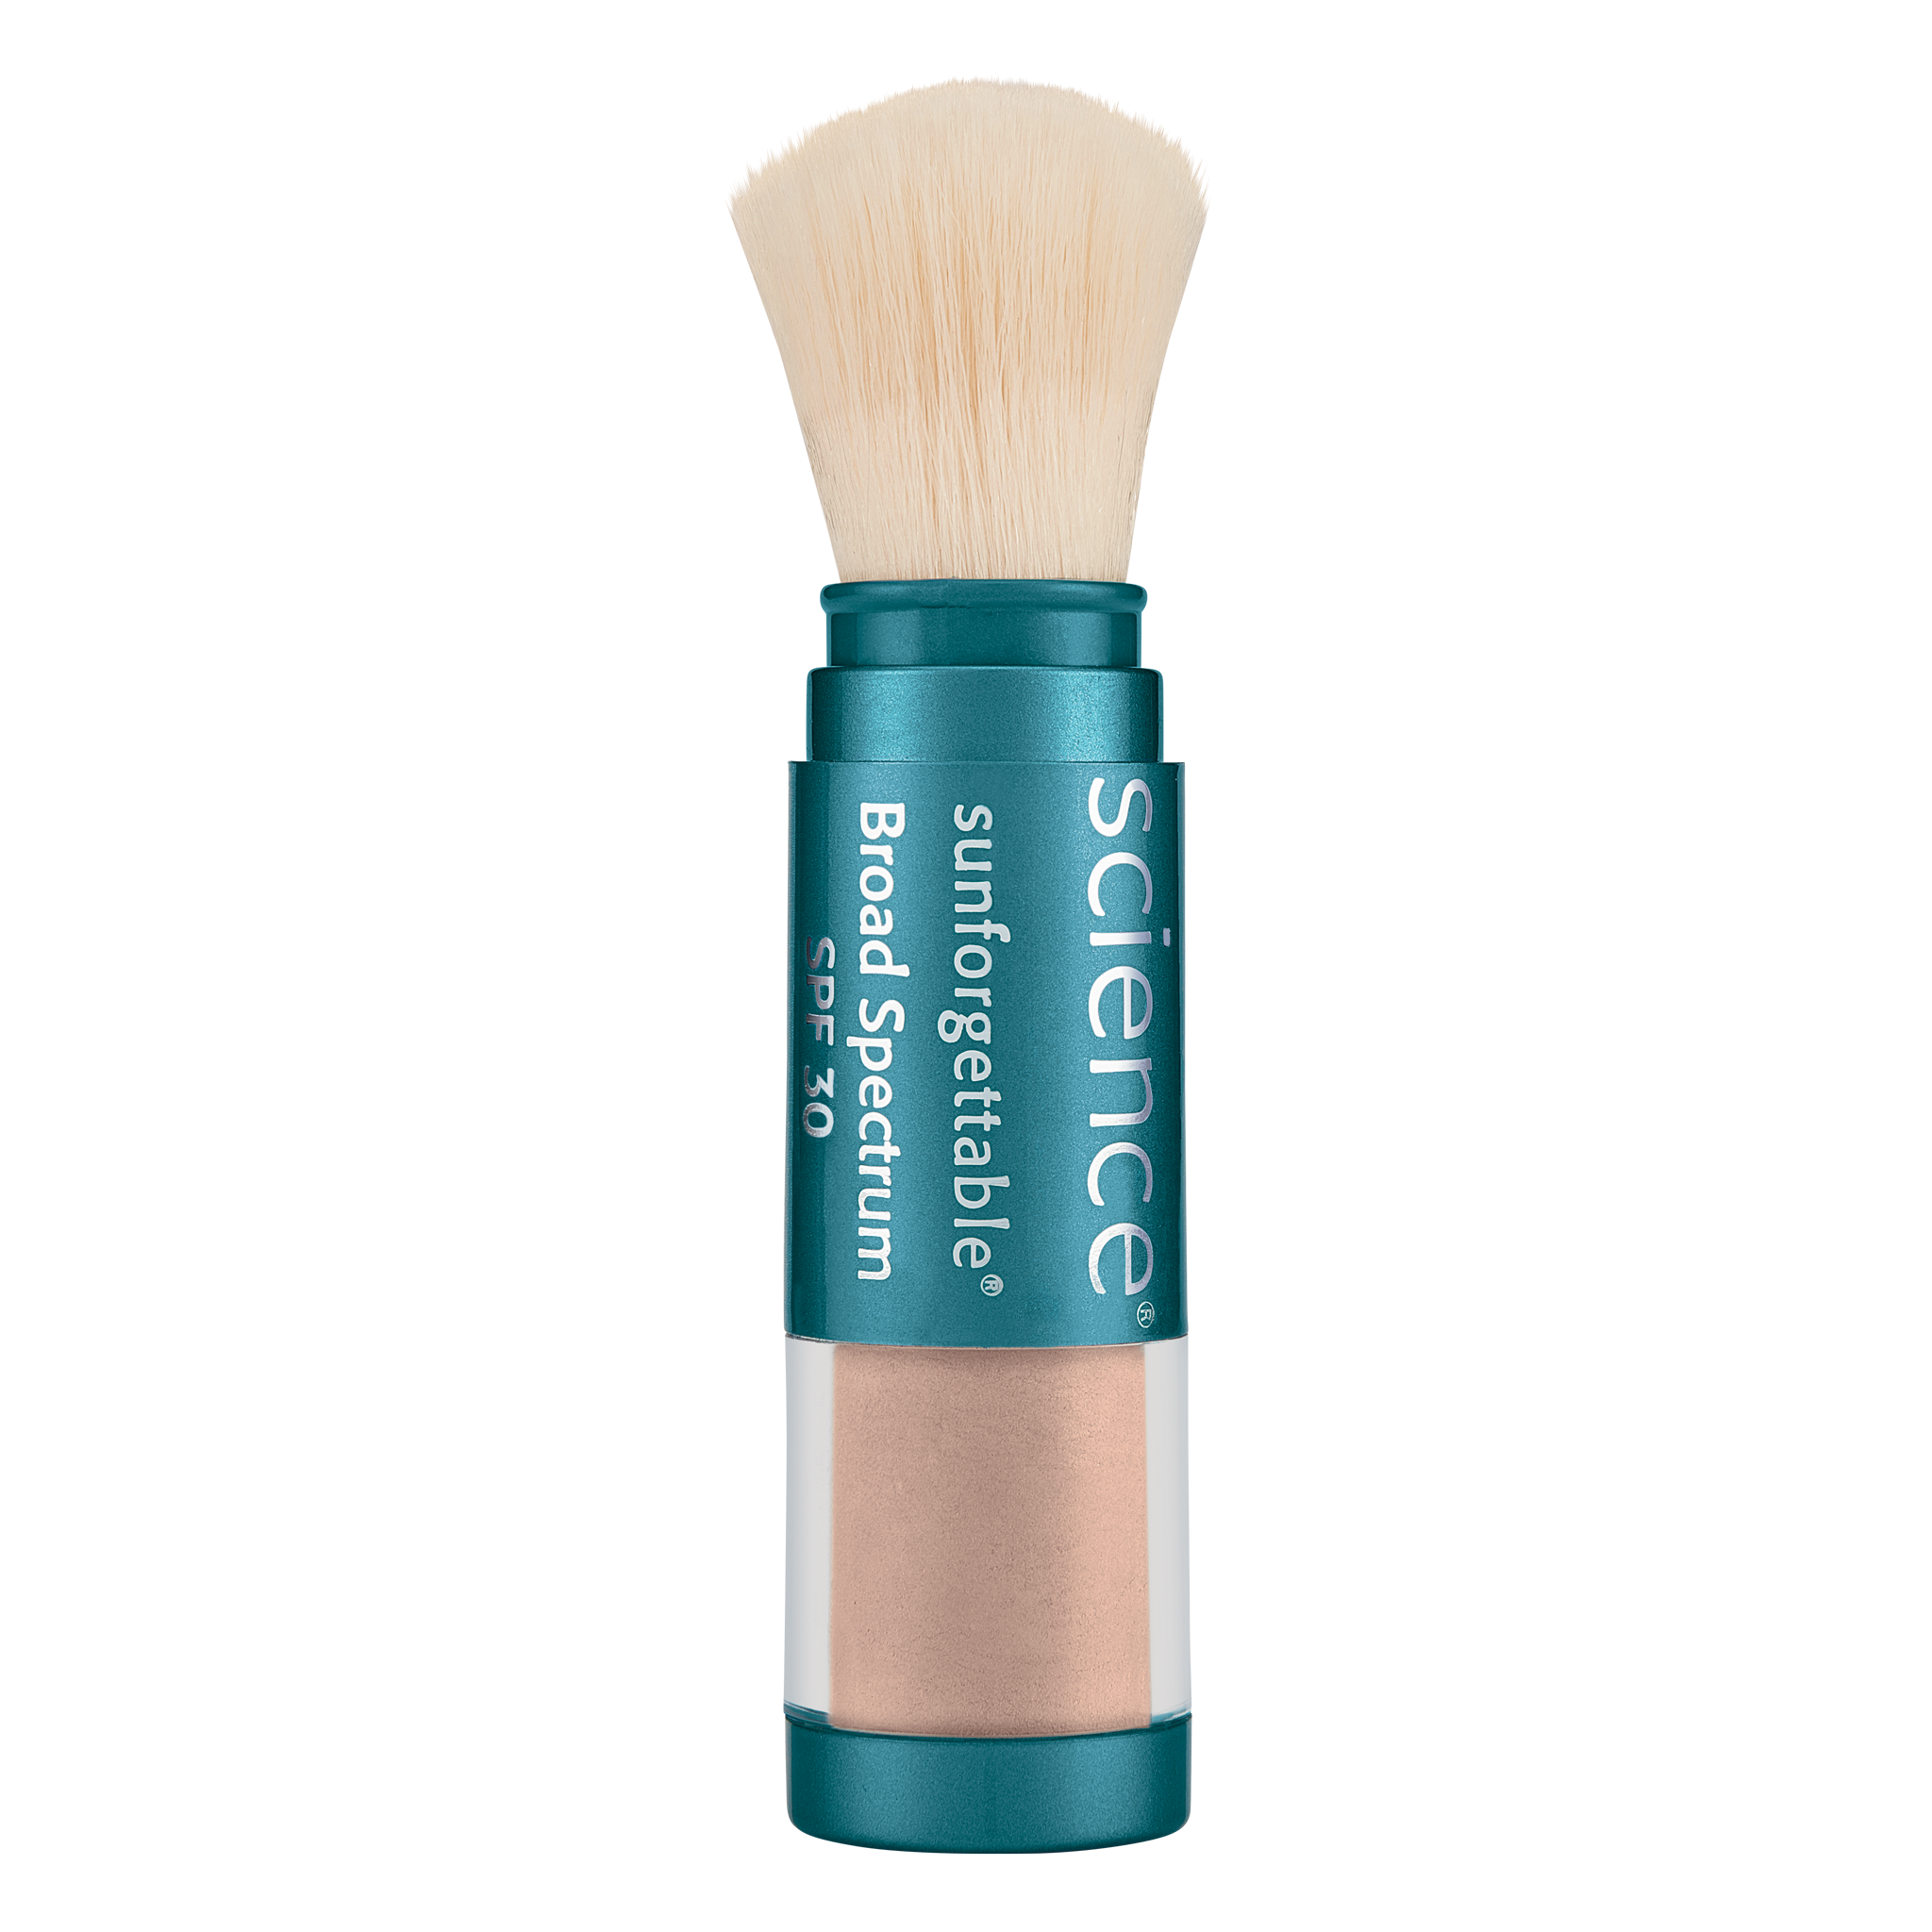 Sunforgettable® Brush-on Sunscreen SPF 30 || Medium